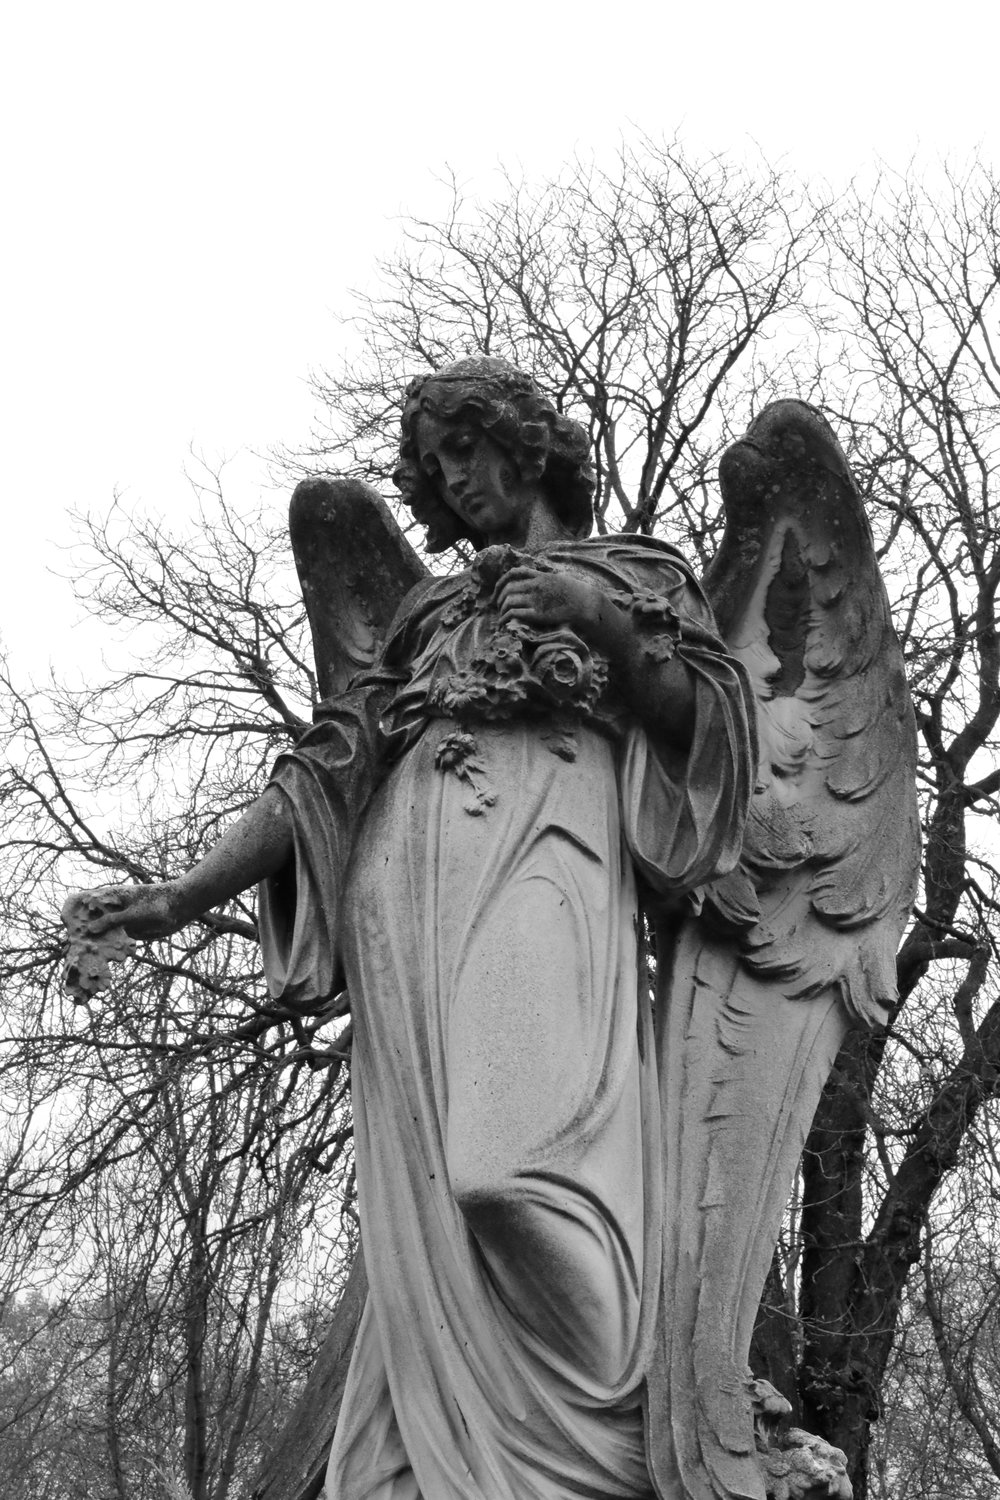 Angel statue on grave, Paris France   https://www.ebay.com/itm/263679741934?ssPageName=STRK:MESELX:IT&_trksid=p3984.m1555.l2649